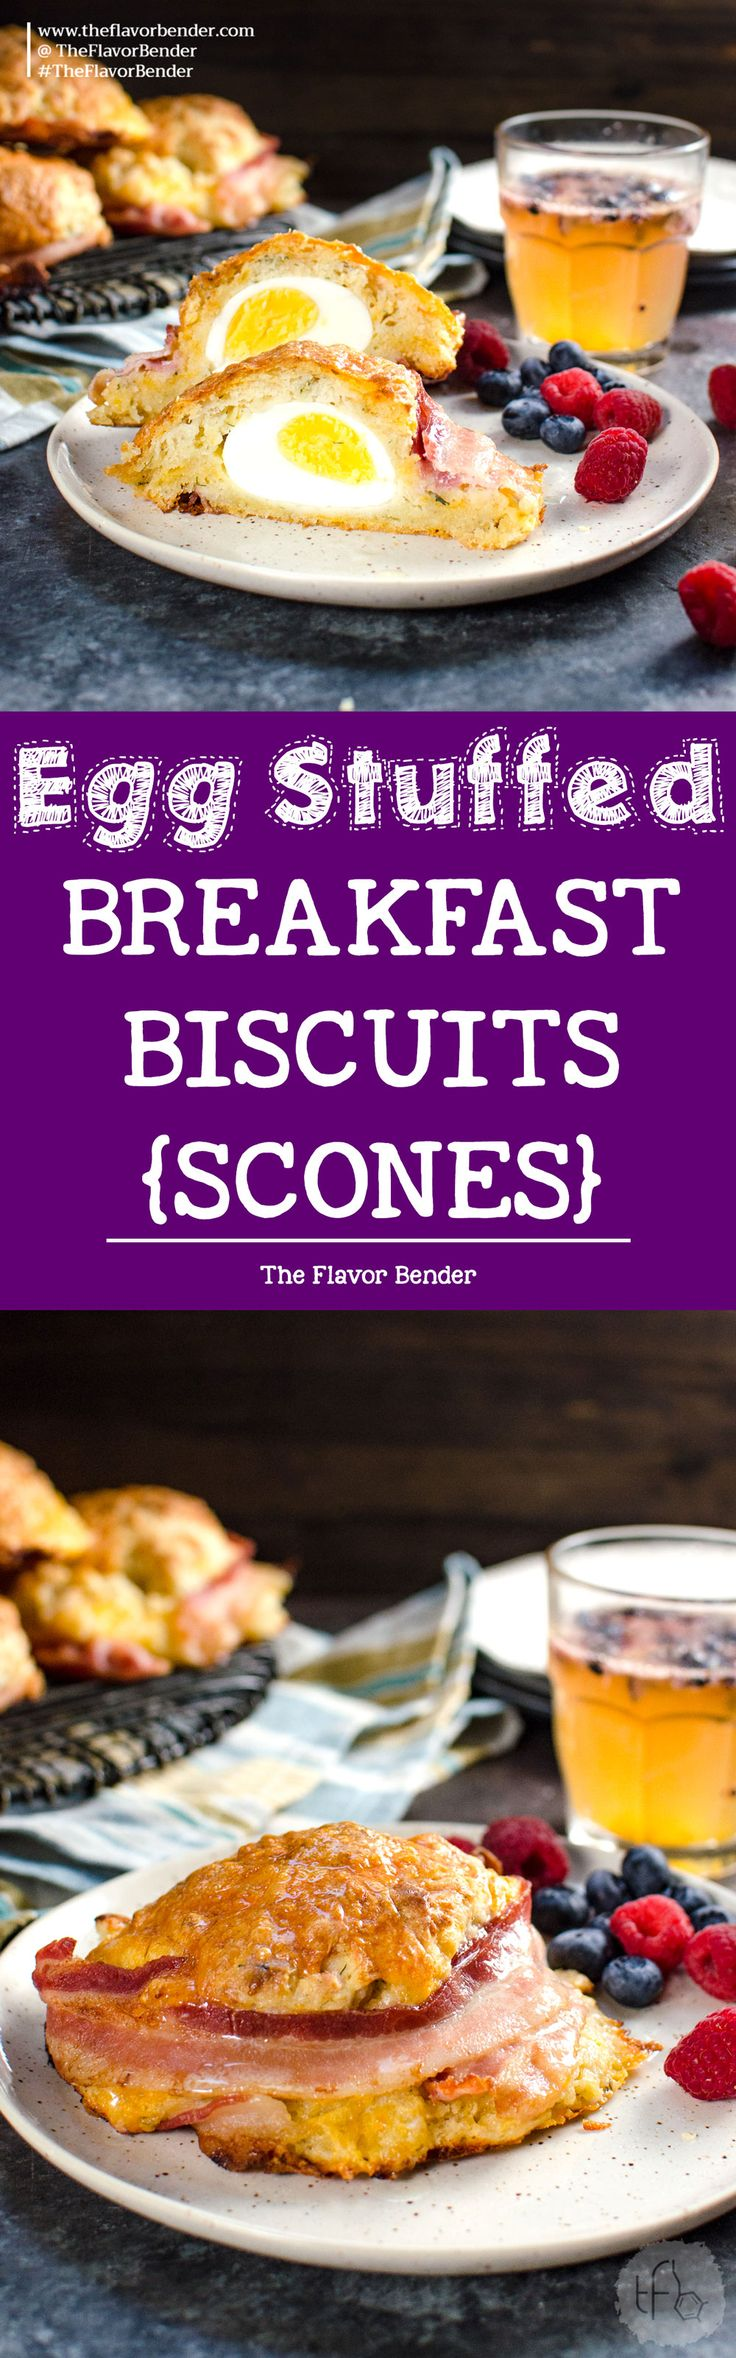 Bacon wrapped Egg Stuffed Breakfast Biscuits (Breakfast Scones) - Cheesy and herby buttermilk biscuits that are delightfully soft in the middle and extra flaky on the outside, and stuffed with a perfectly cooked egg and wrapped with bacon for good measure. Perfect for Brunch. via @theflavorbender